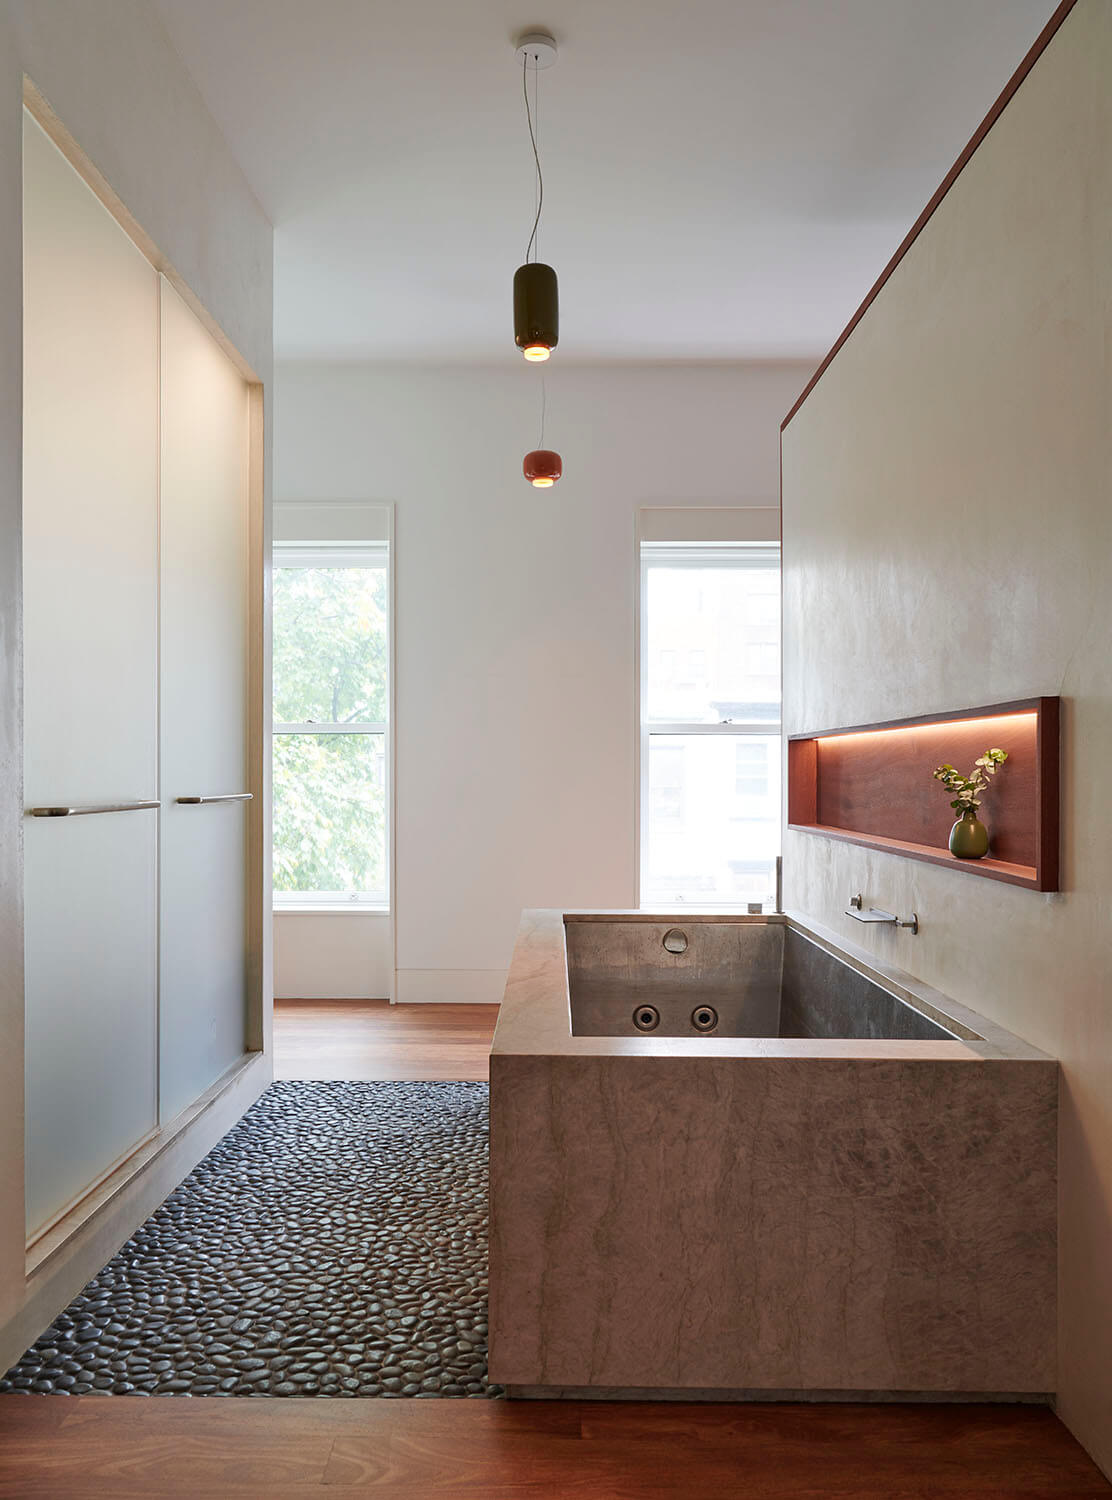 The parents' bathroom of this Park Slope addition has an oversized stainless steel hot tub wrapped in limestone and a floor of black pebbles.